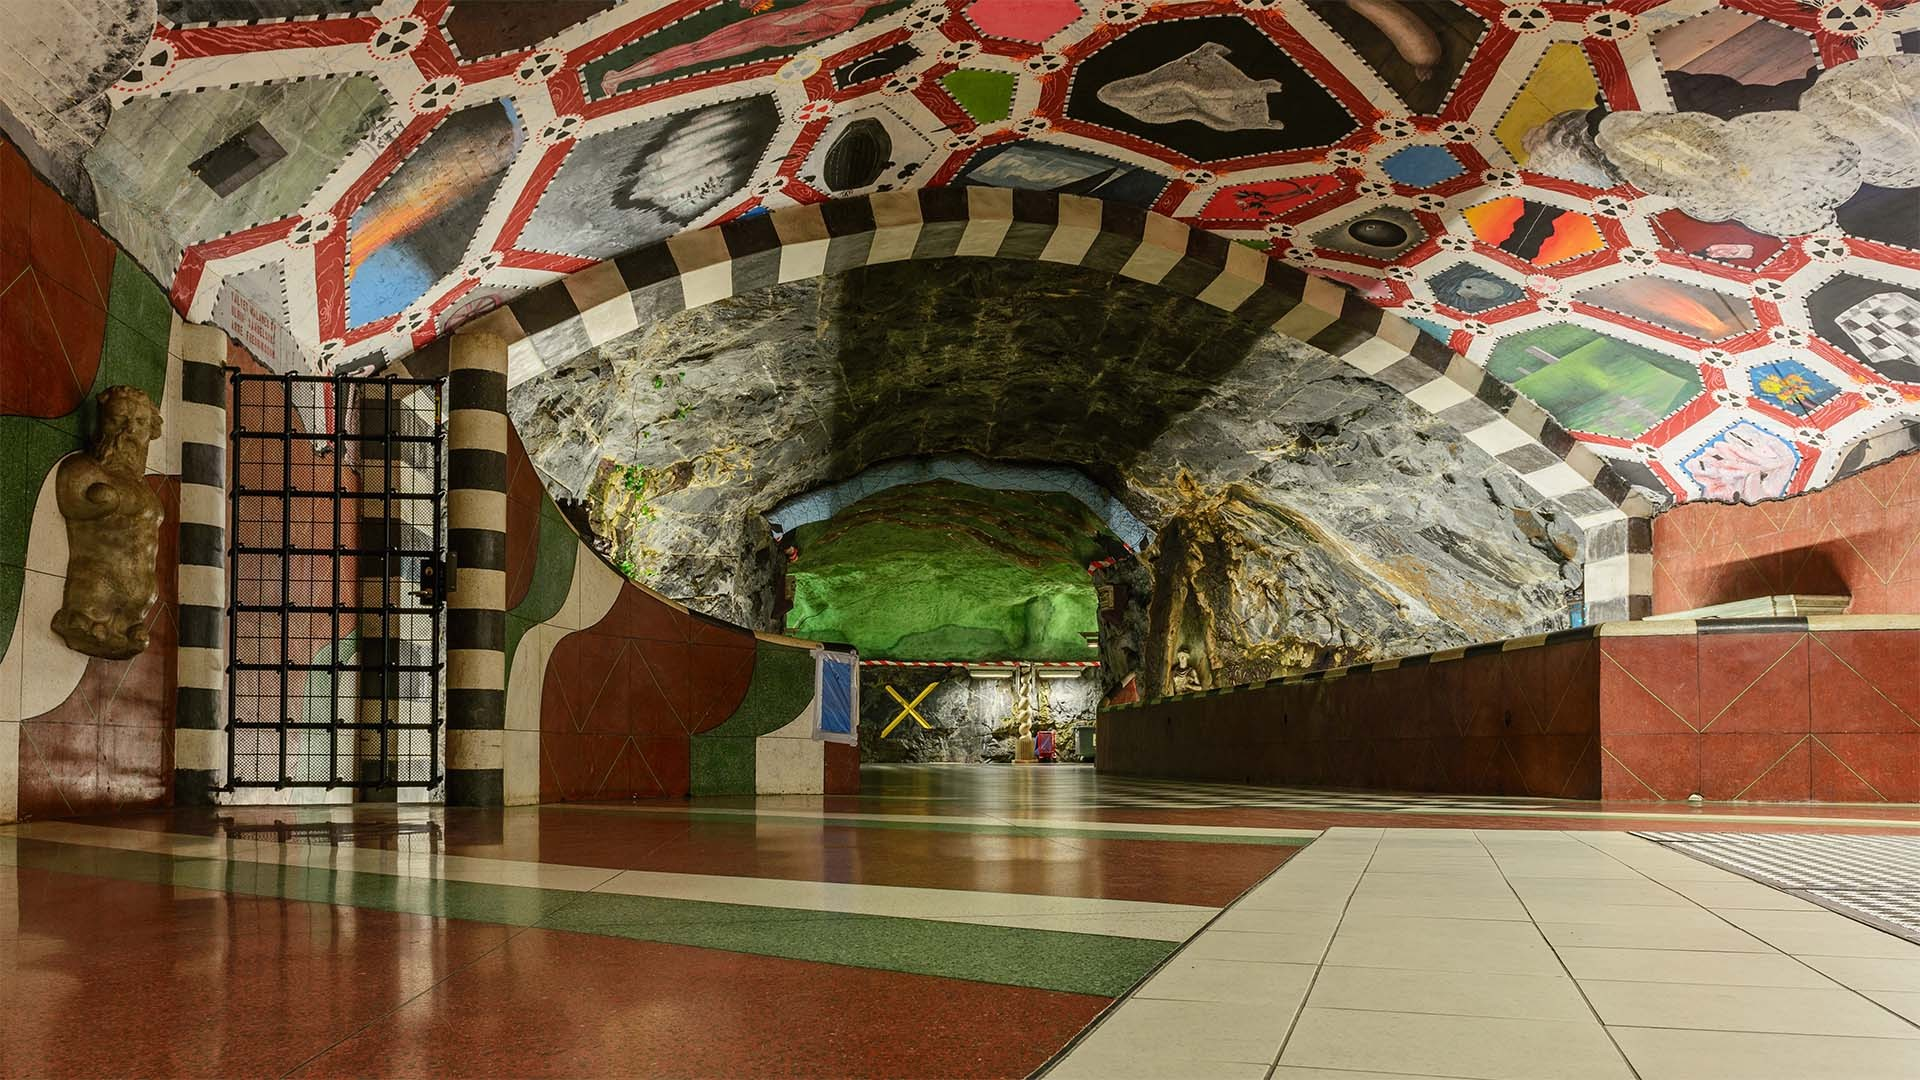 Art at Kungsträdgården station on the Stockholm metro